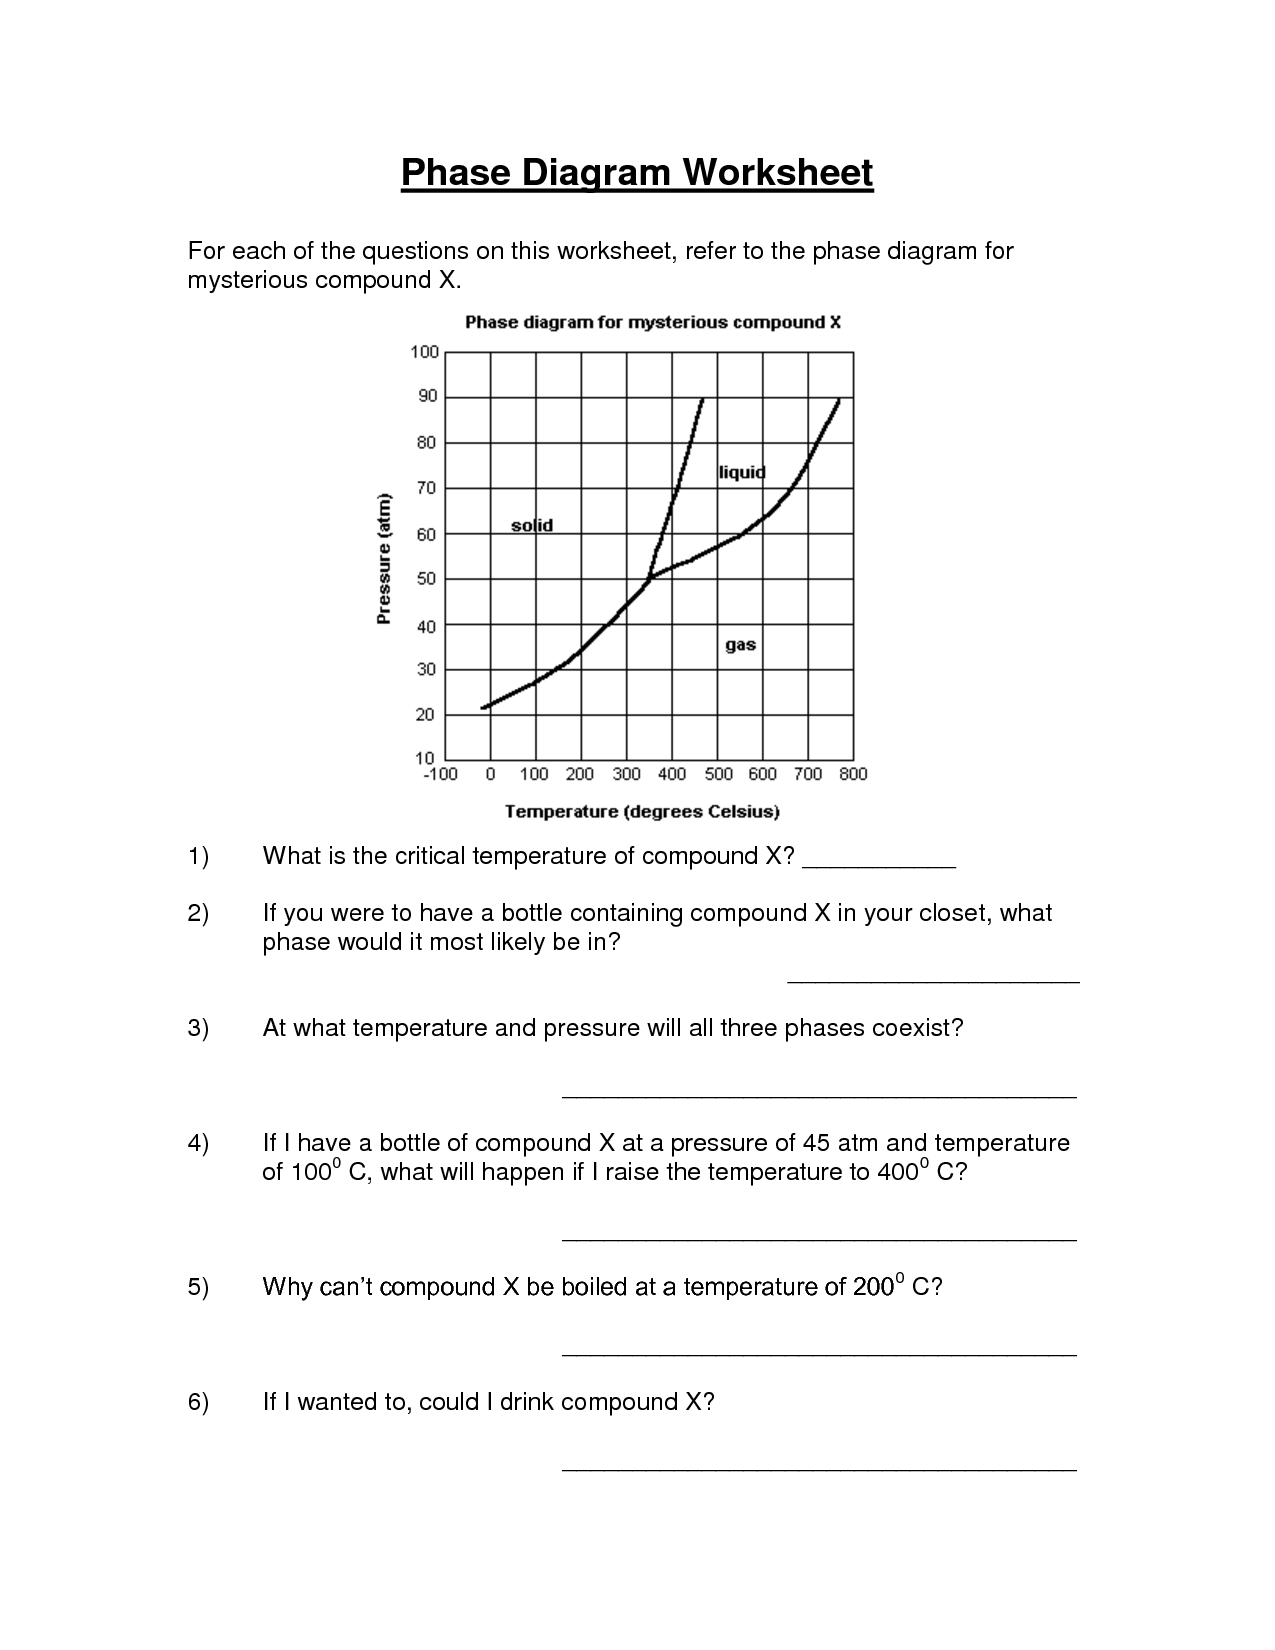 15 Best Images Of Phase Change Diagram Worksheet Answers